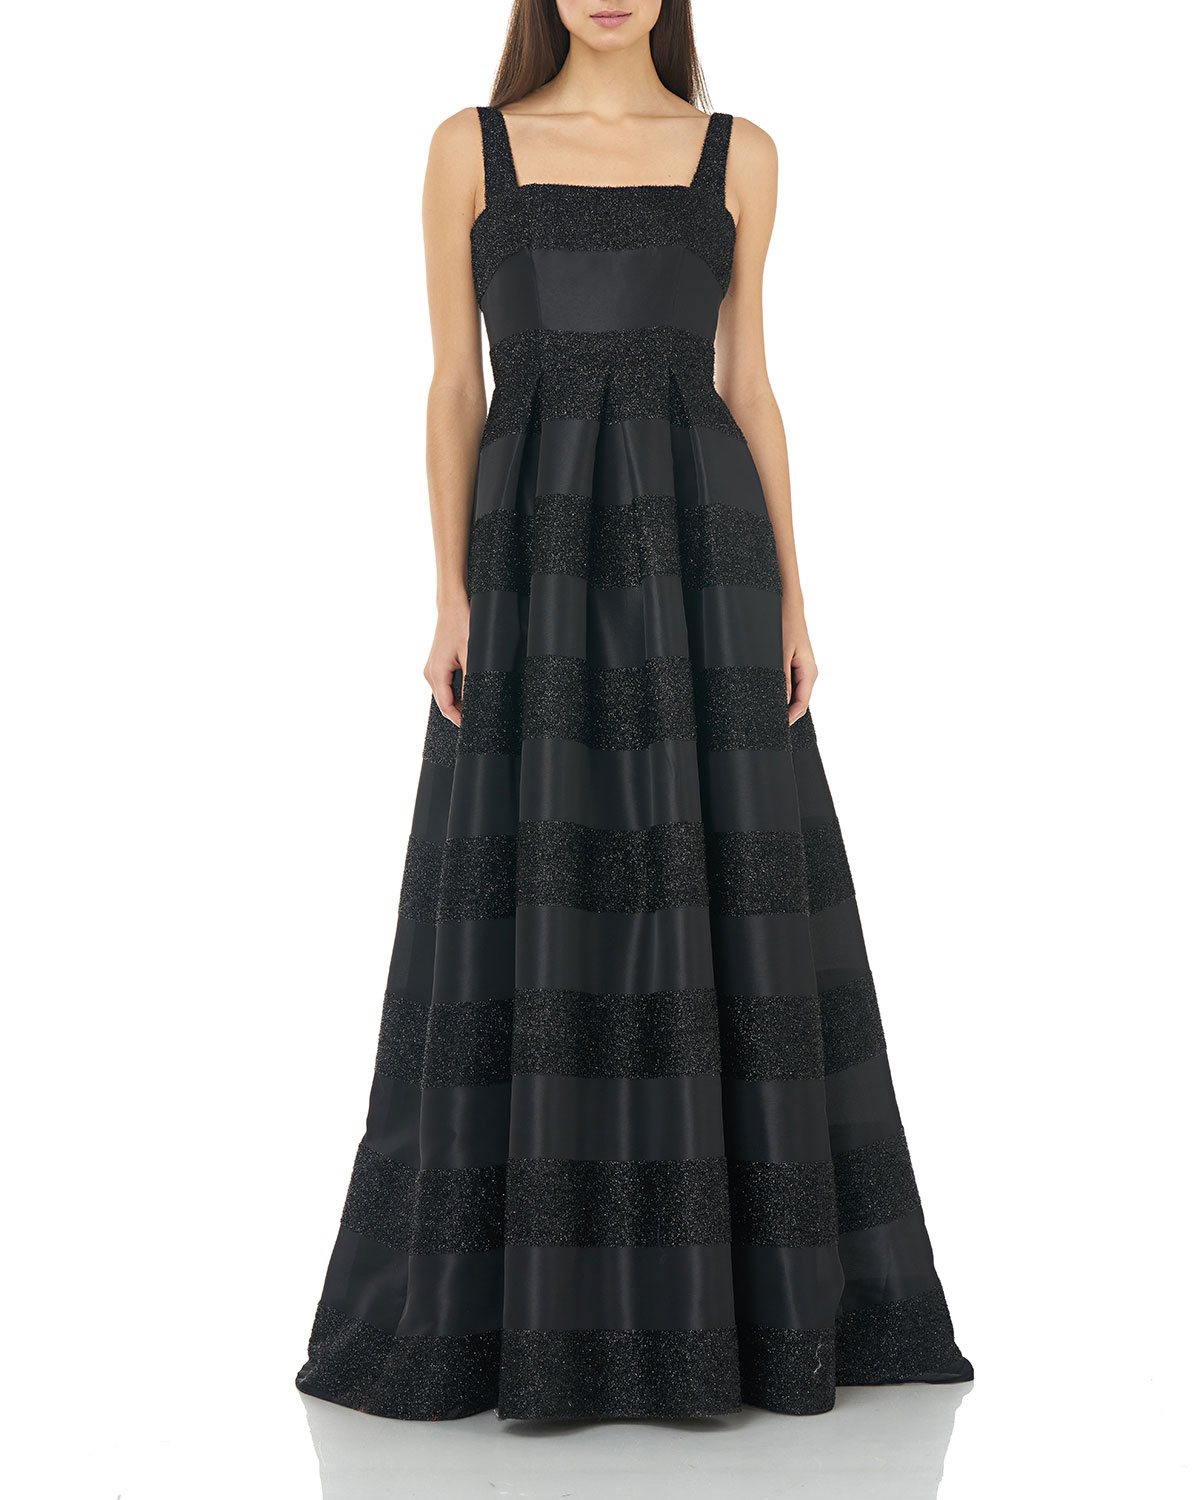 Carmen Marc Valvo Infusion Eyelash Striped Square-Neck Sleeveless Gown with Inverted Pleats